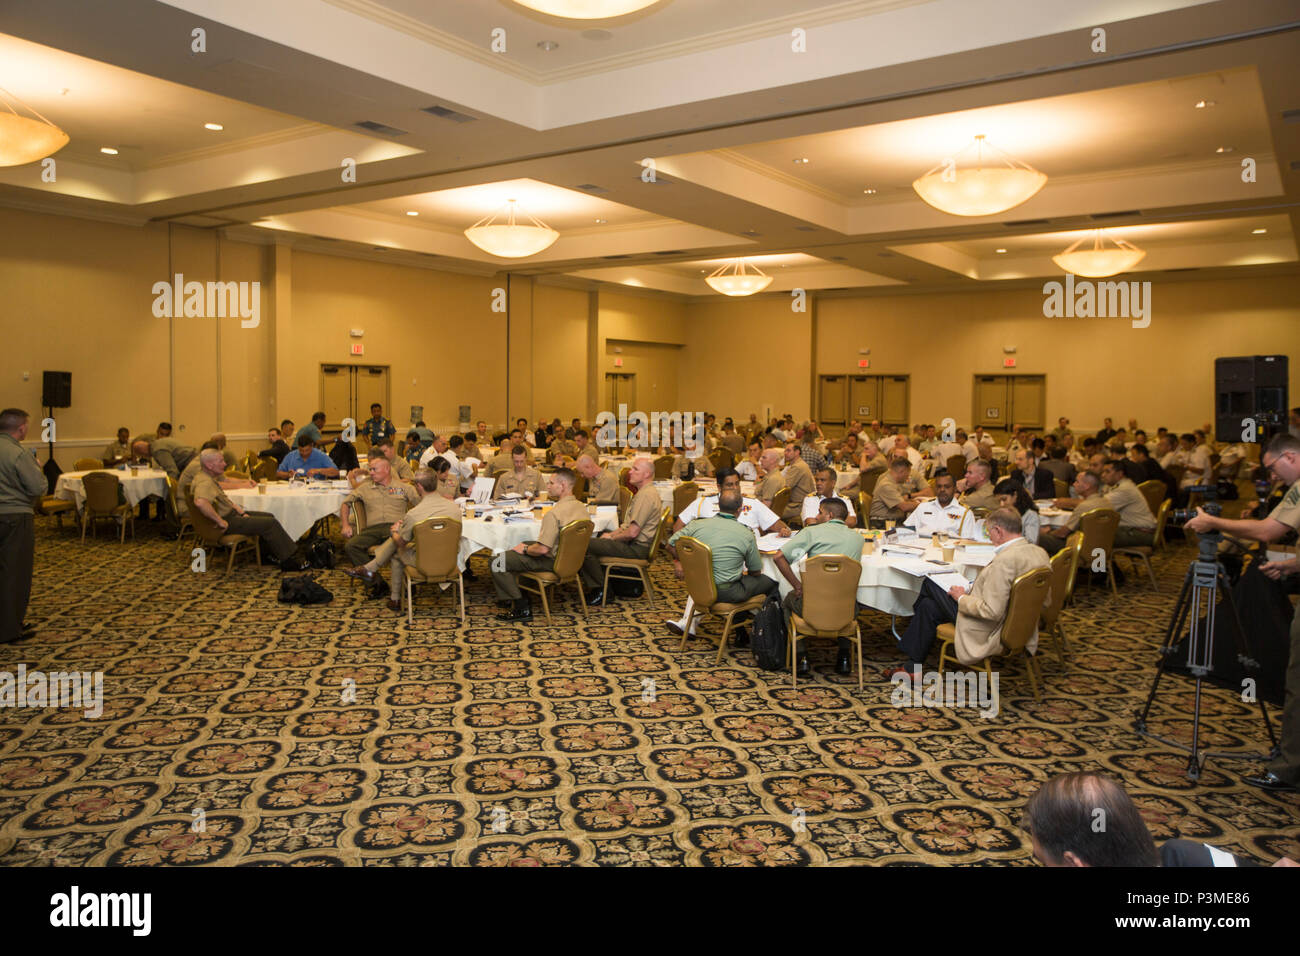 Table Top Photo Stockfotos & Table Top Photo Bilder - Seite 17 - Alamy